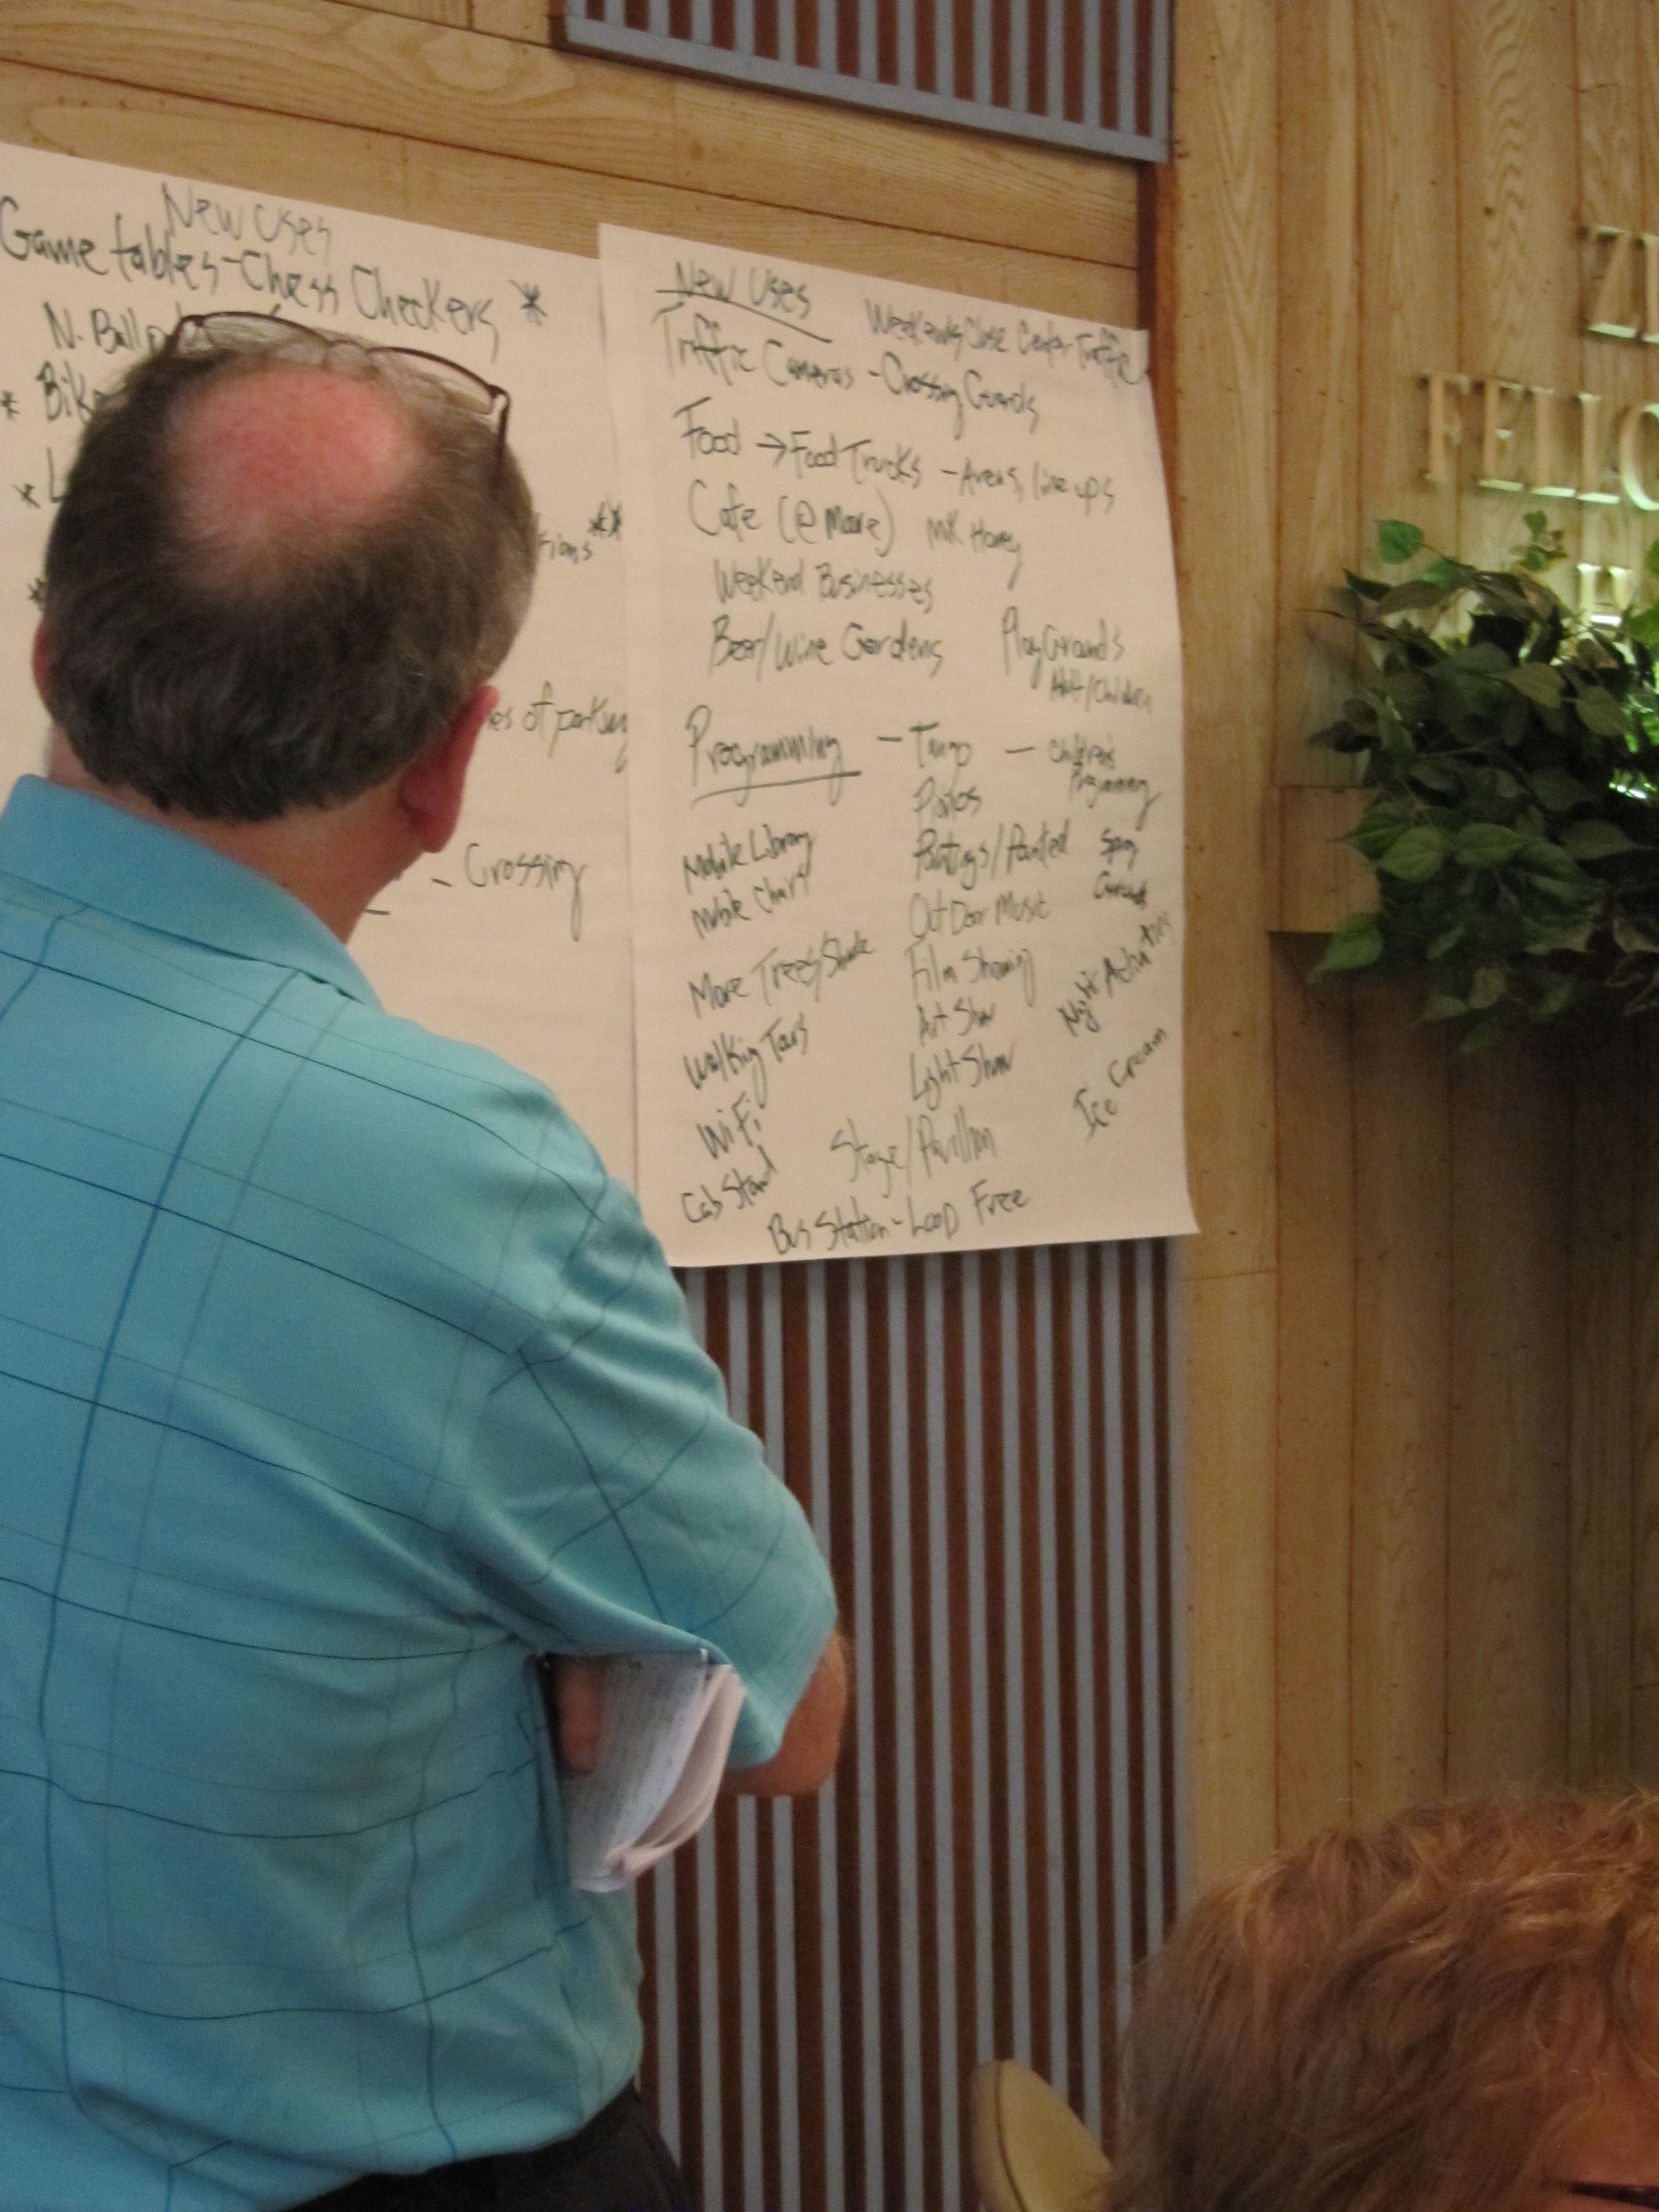 Ideas for the Parkway gathered at Olivet Covenant Presbyterian Church